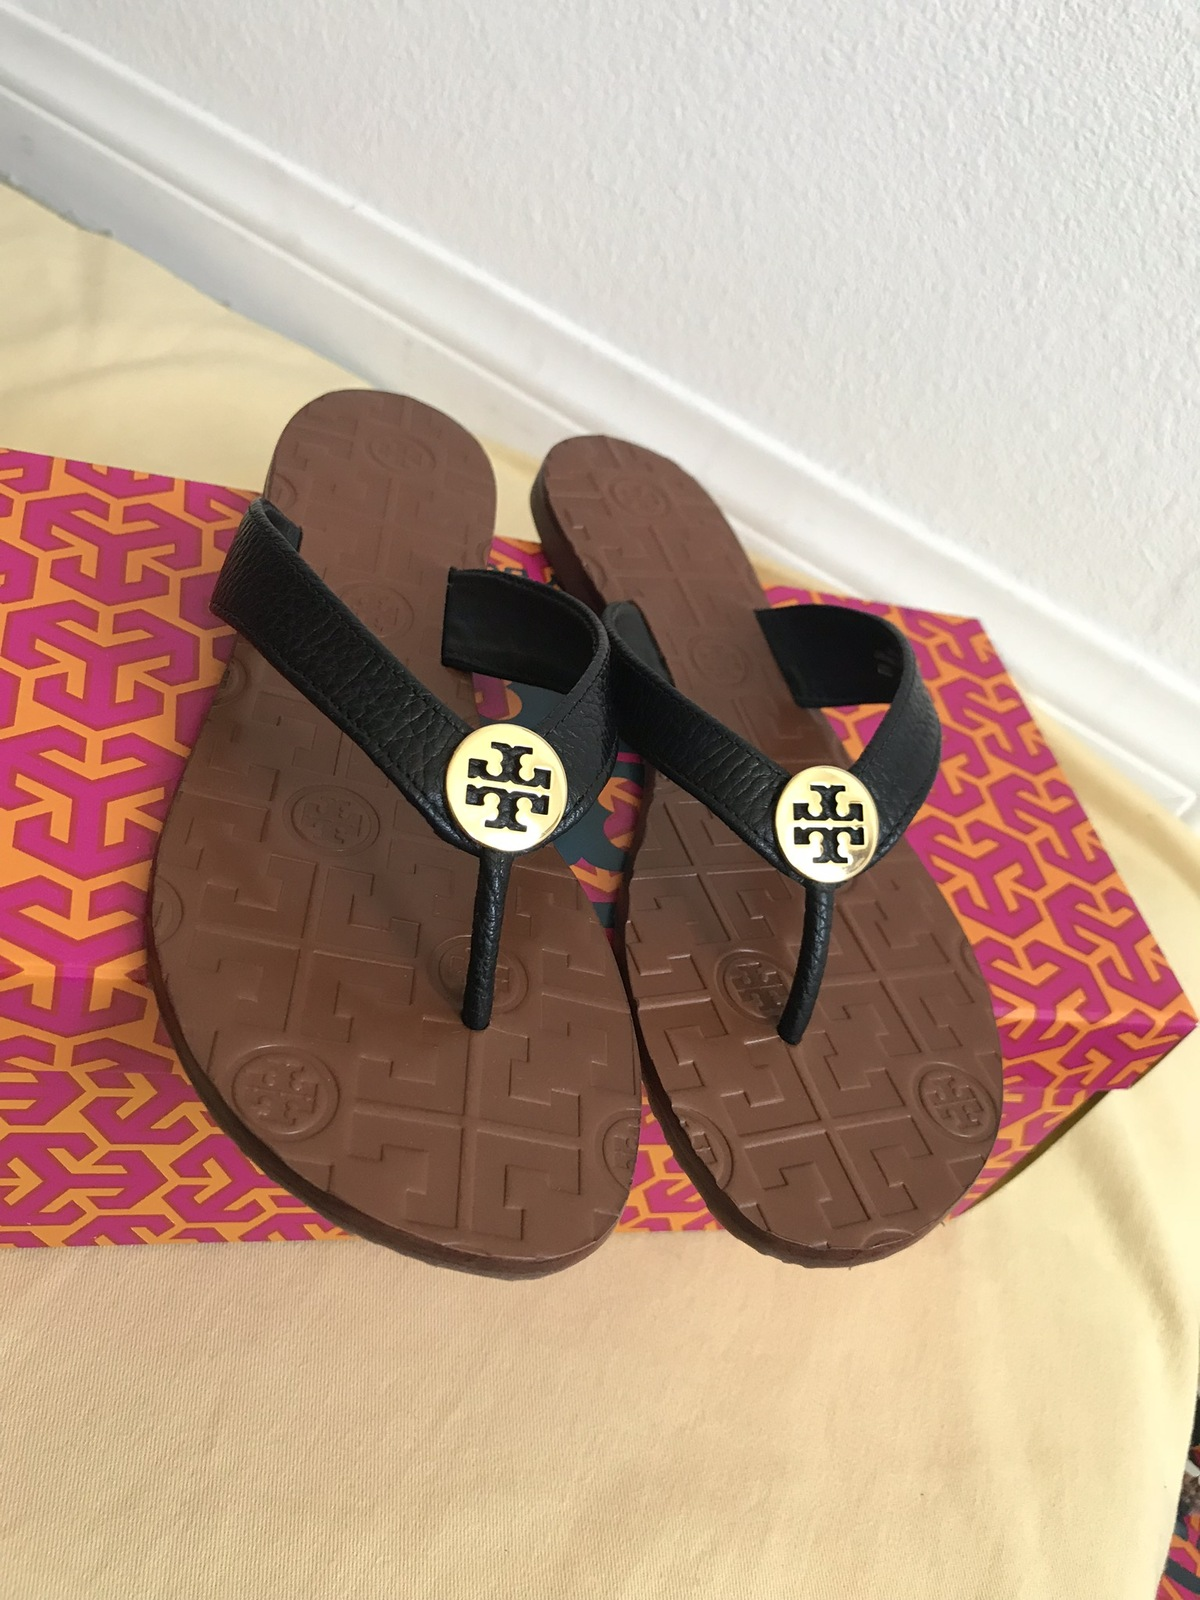 bf9303512 size 7M NIB TORY BURCH Black  Gold Thora Thong Leather Sandals